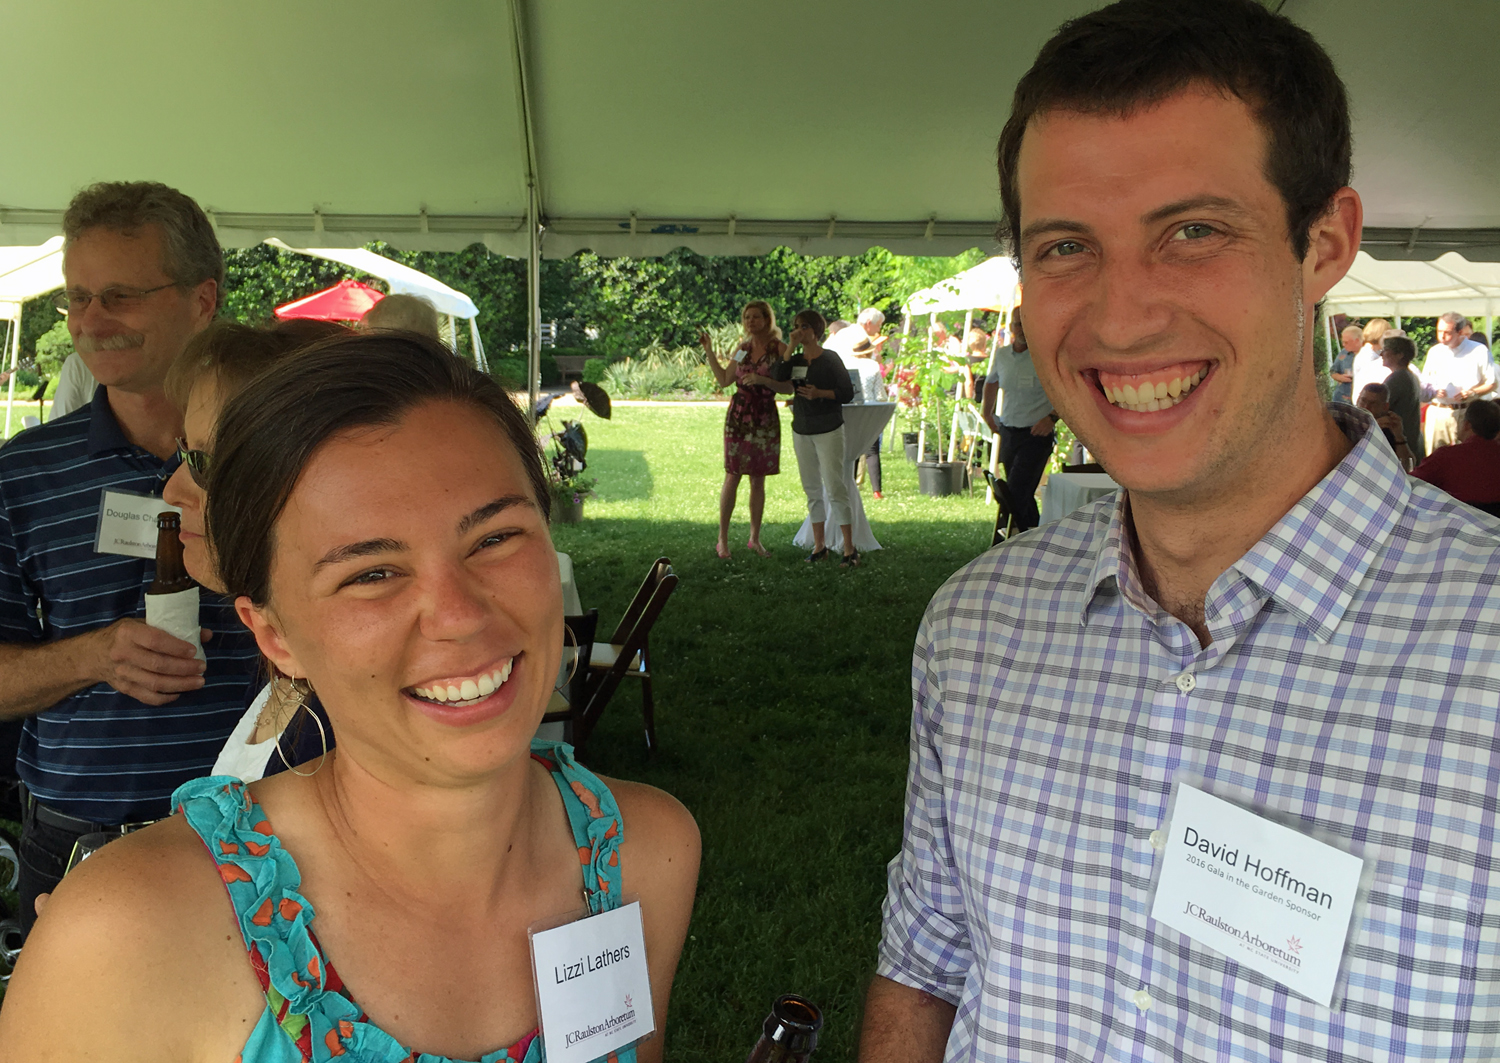 Lizzie Lathers and David Hoffman laugh about their common experiences working at the arboretum.